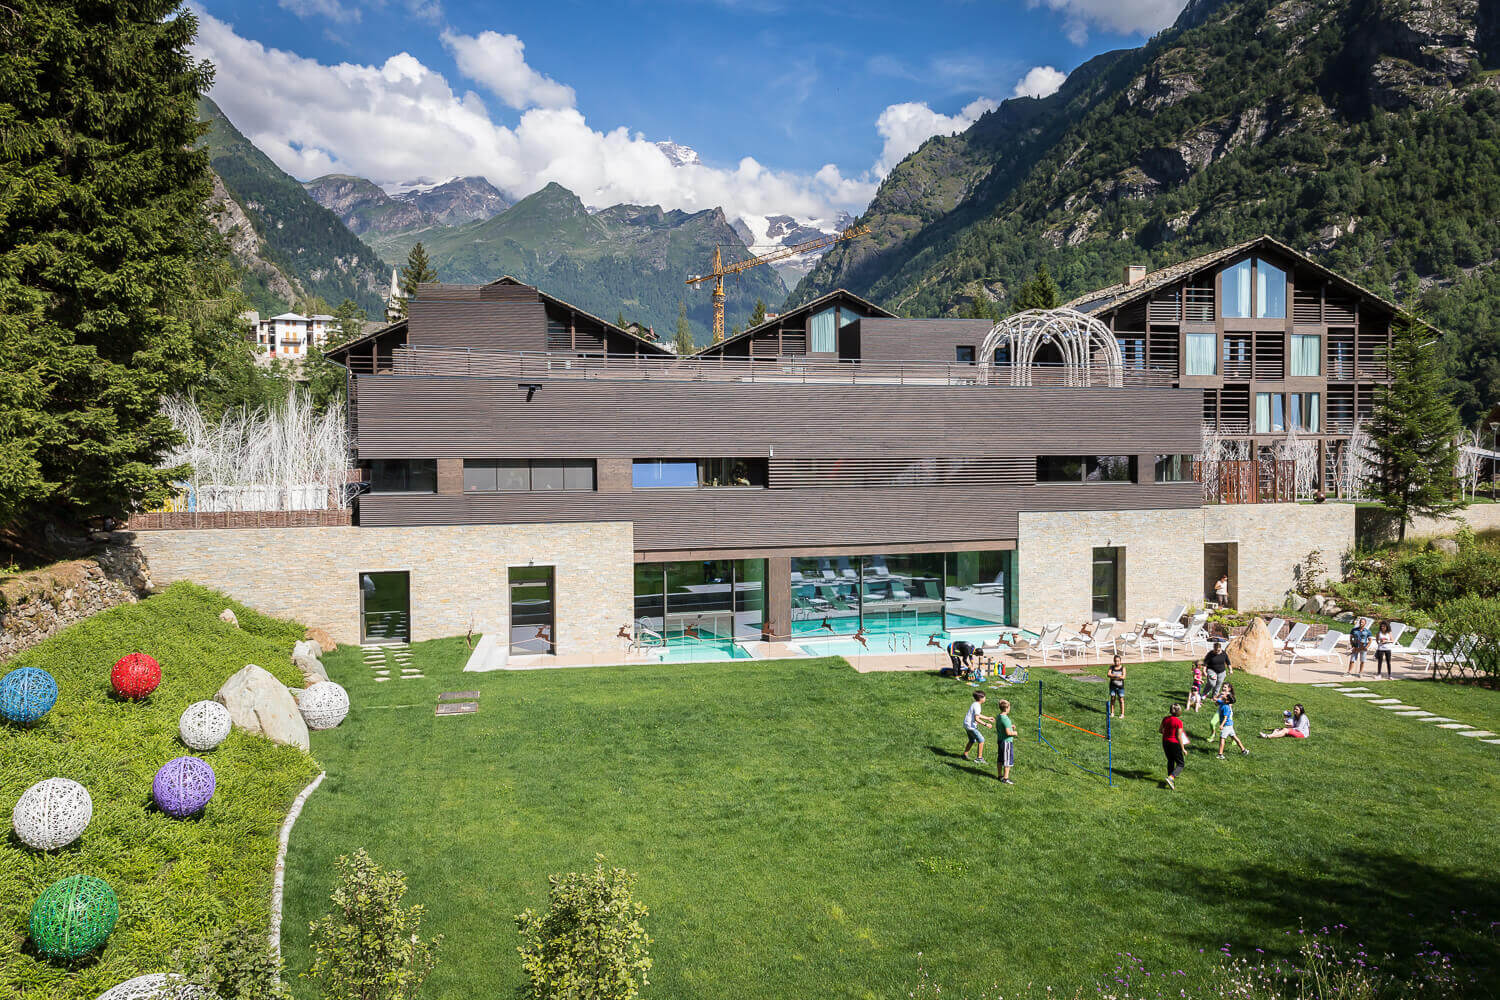 alagna valsesia single parents Our network of single men and women in alagna valsesia is the perfect place to make friends or find a boyfriend or girlfriend in alagna valsesia.